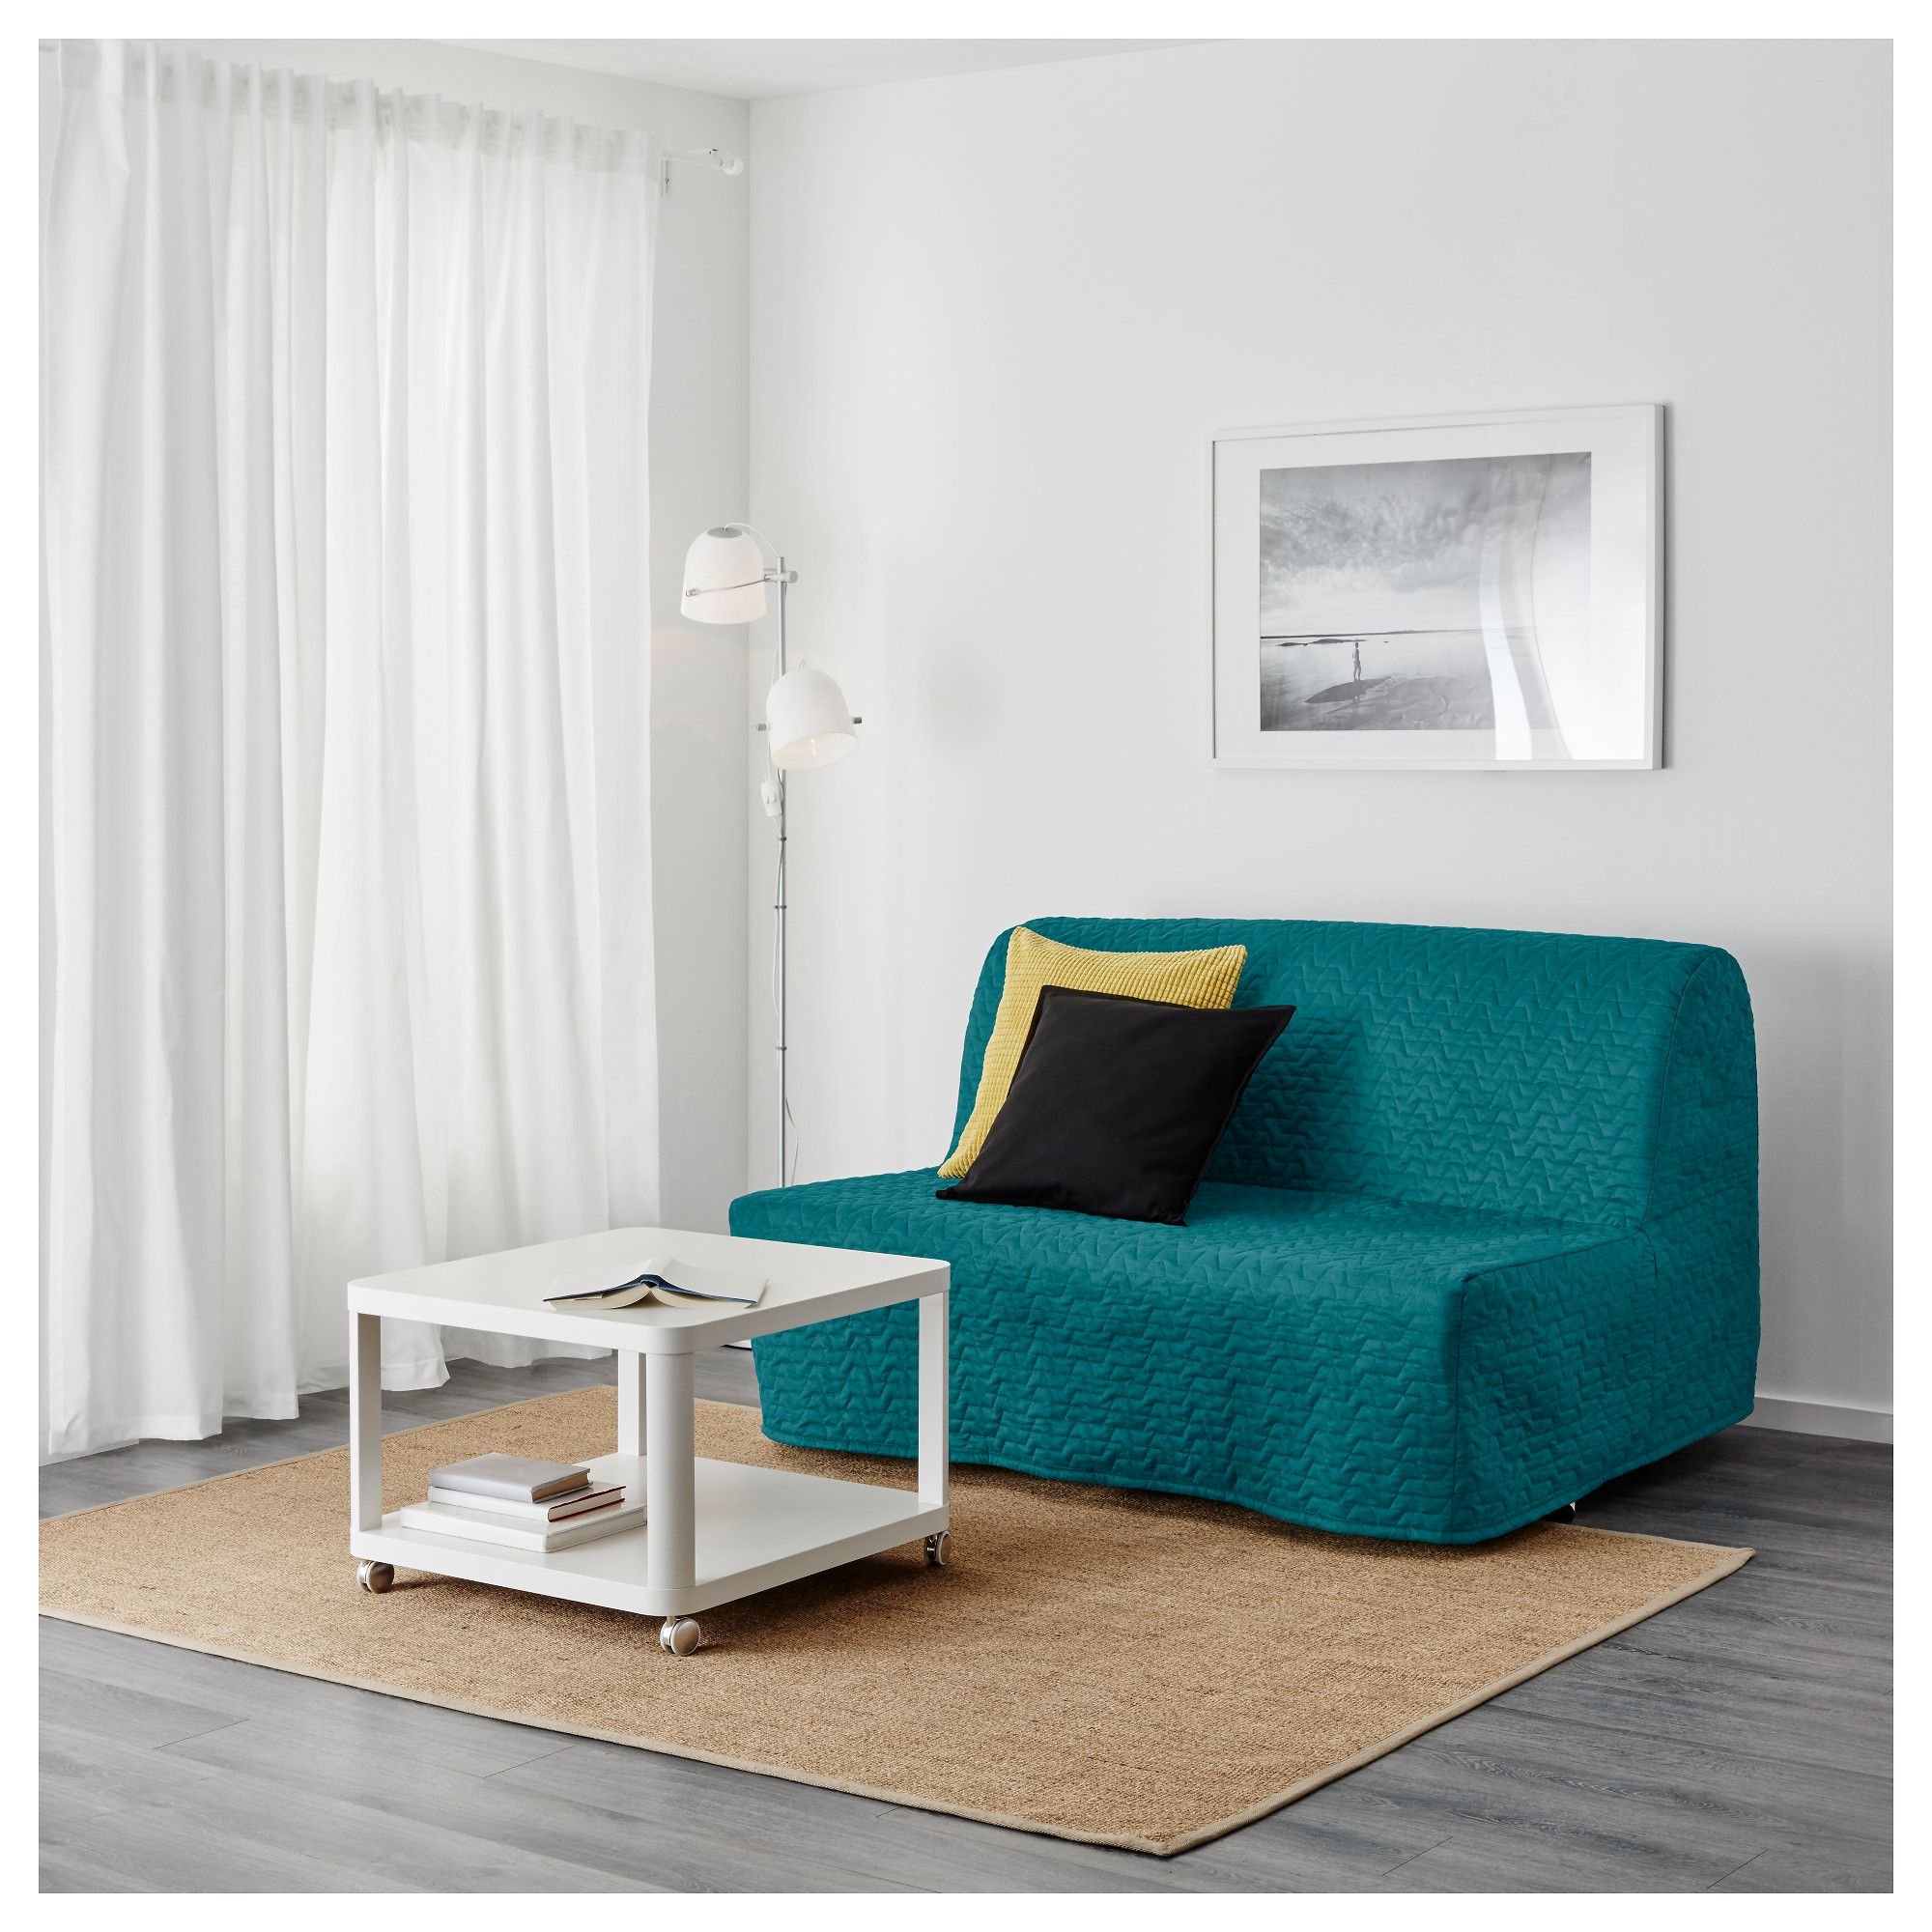 Ikea Bettsessel Lövas Ikea Lycksele LÖvÅs Sofa Bed Vallarum Turquoise